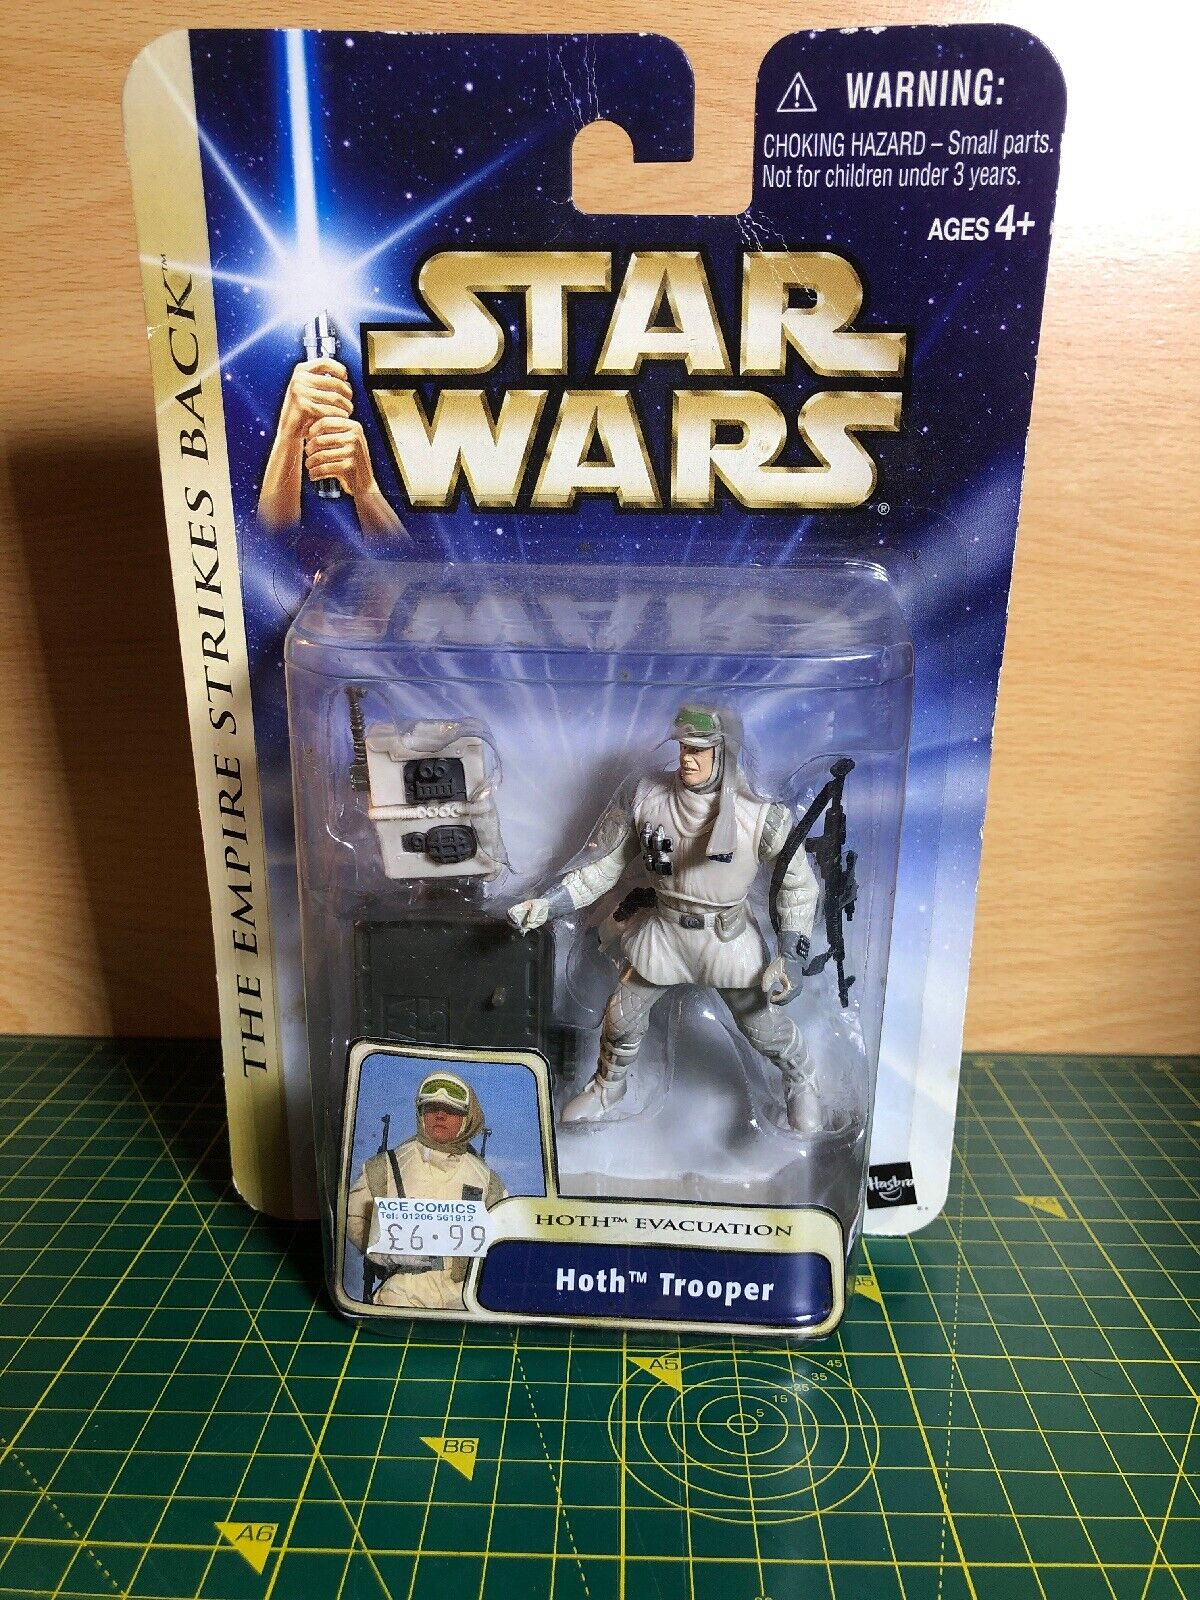 Star Wars The Empire Strikes Back Hoth Trooper